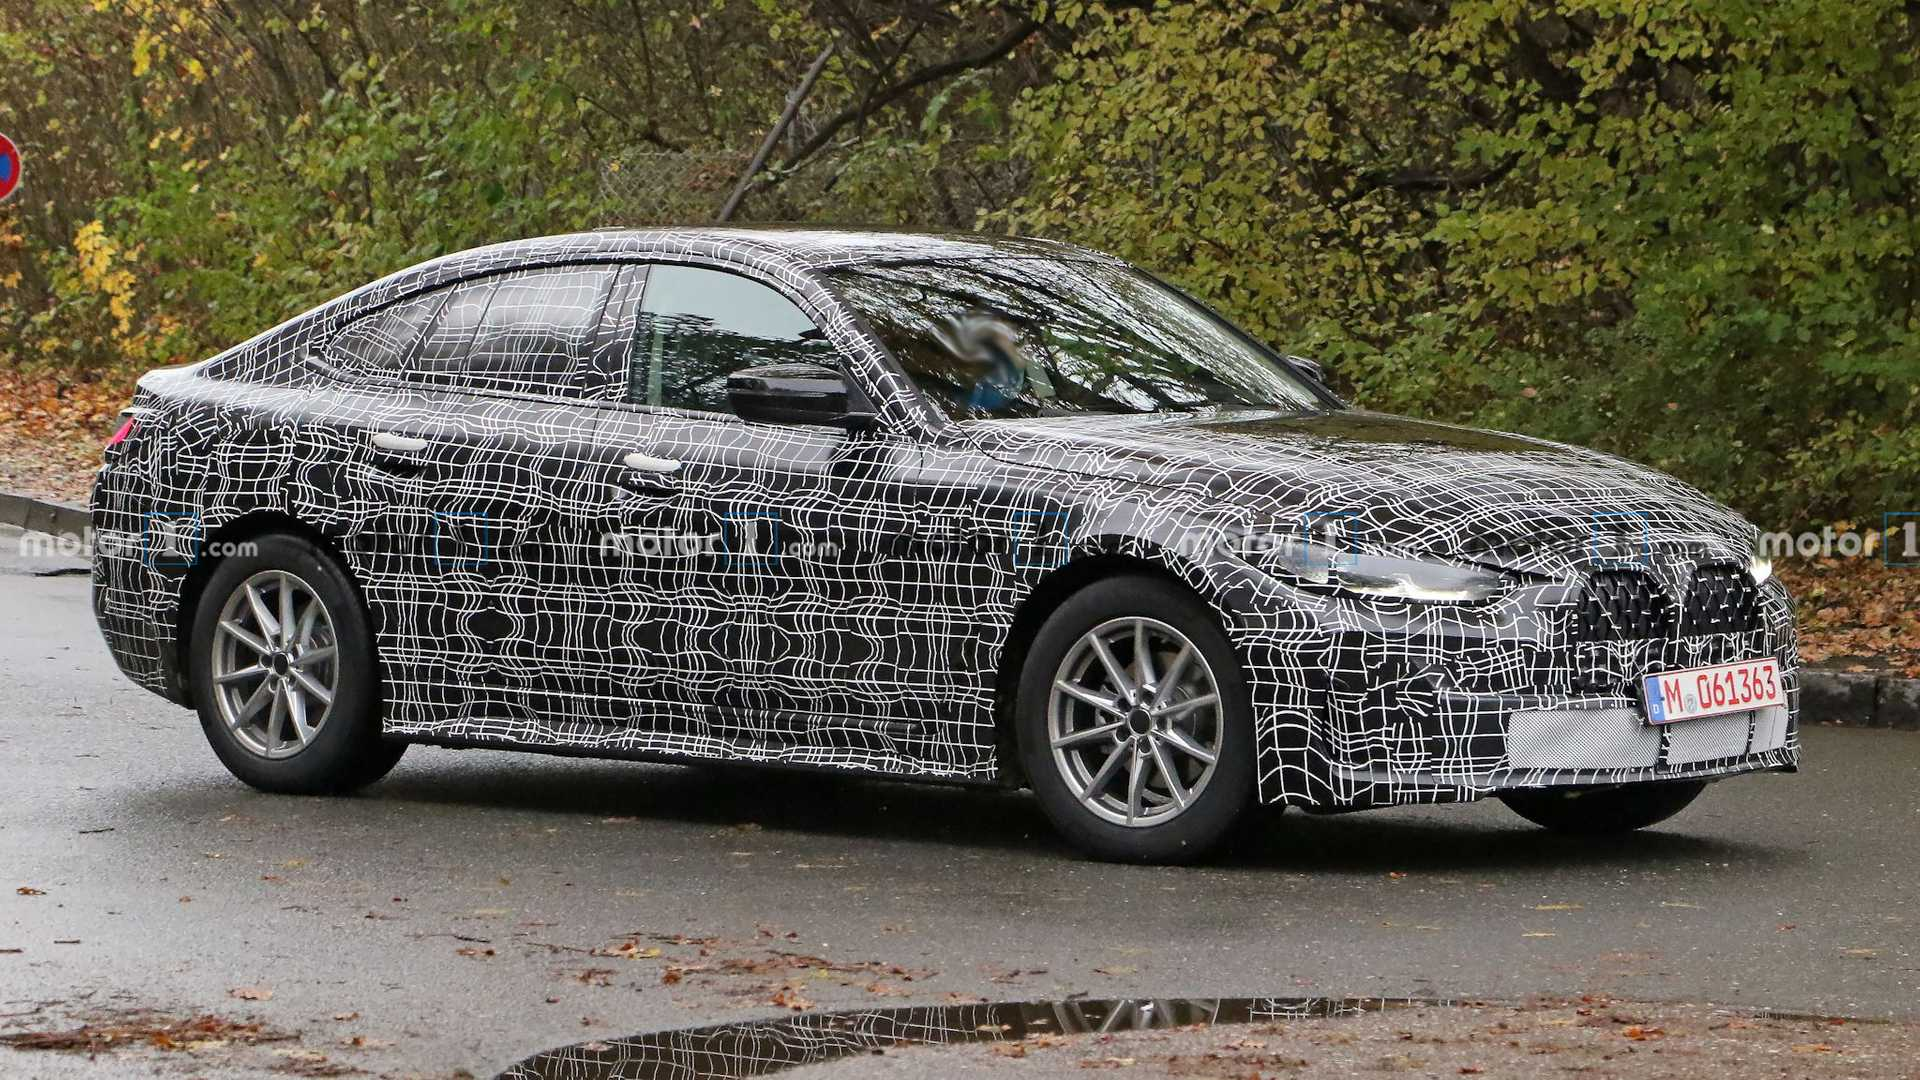 BMW 4 Series Gran Coupe Spy Photos Show Sedan Is Nearing Its Reveal